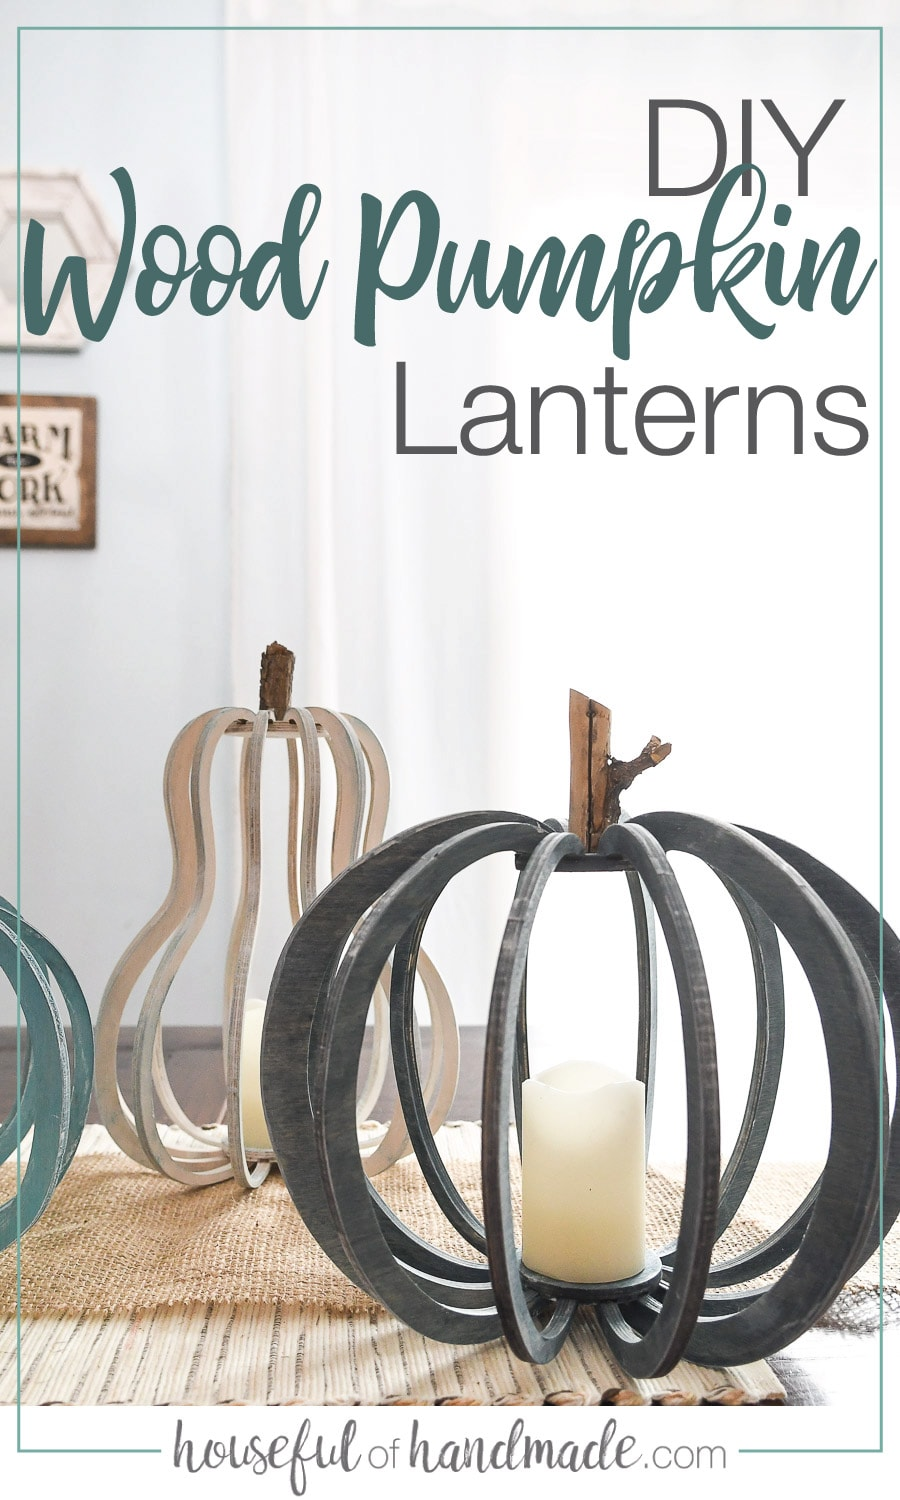 Picture of wood pumpkin lanterns on the table with words above it.